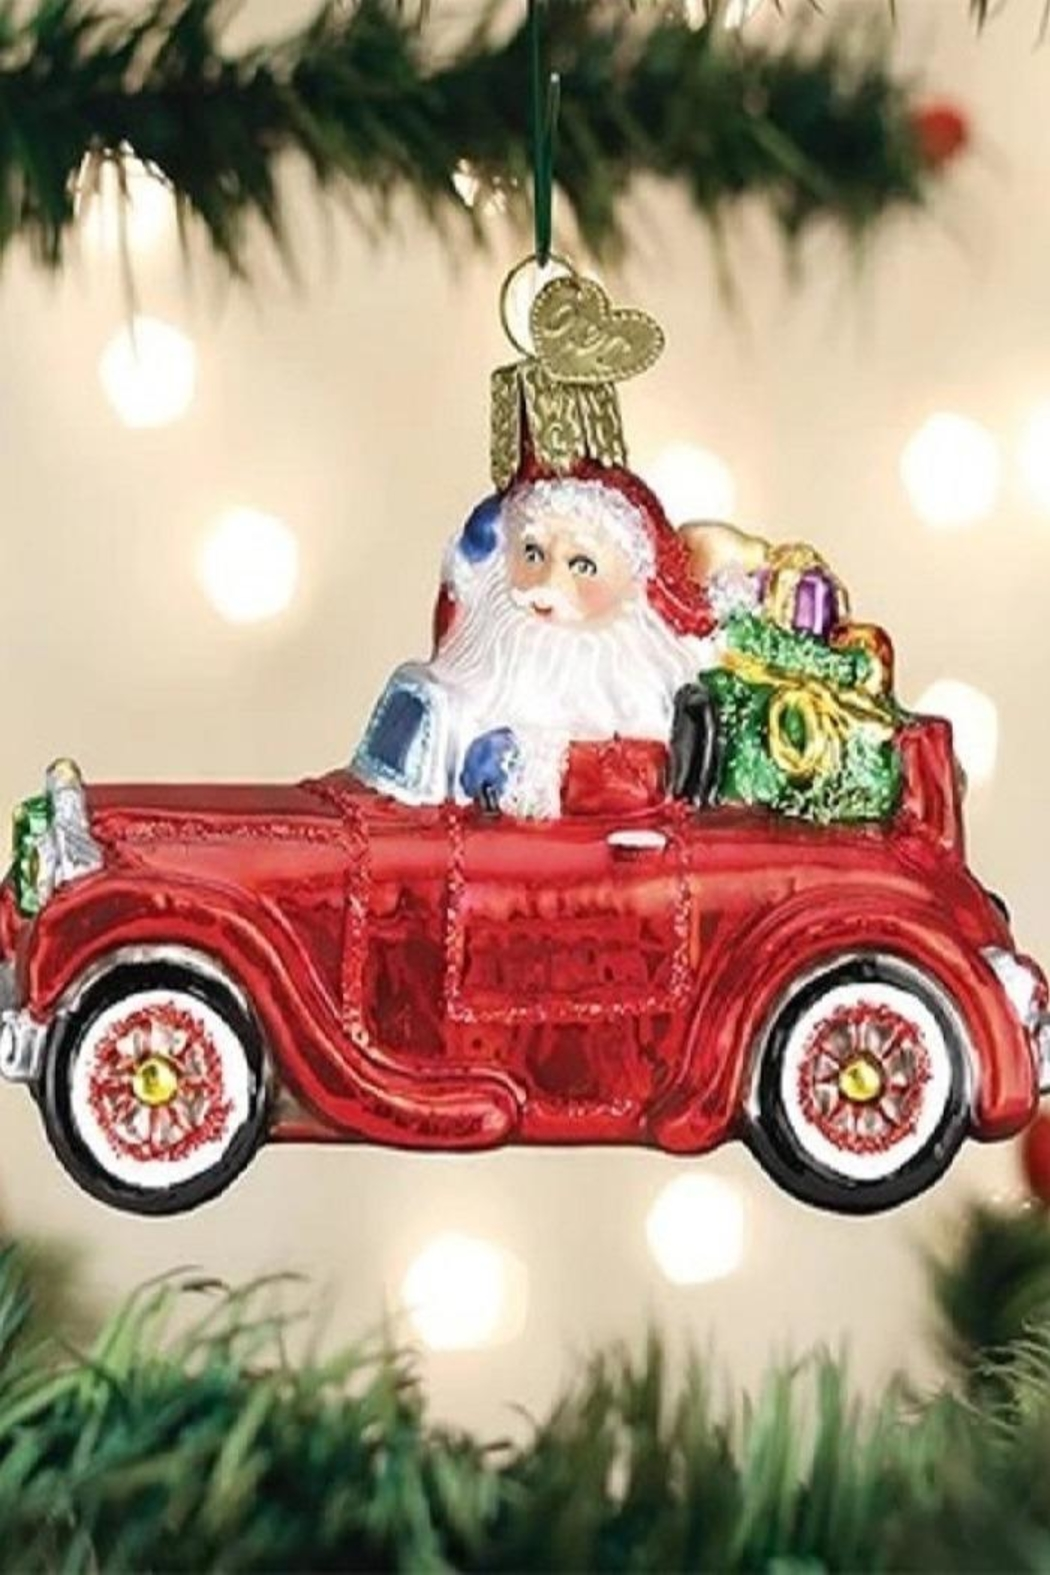 Old World Christmas Santa In Antique Car - Main Image